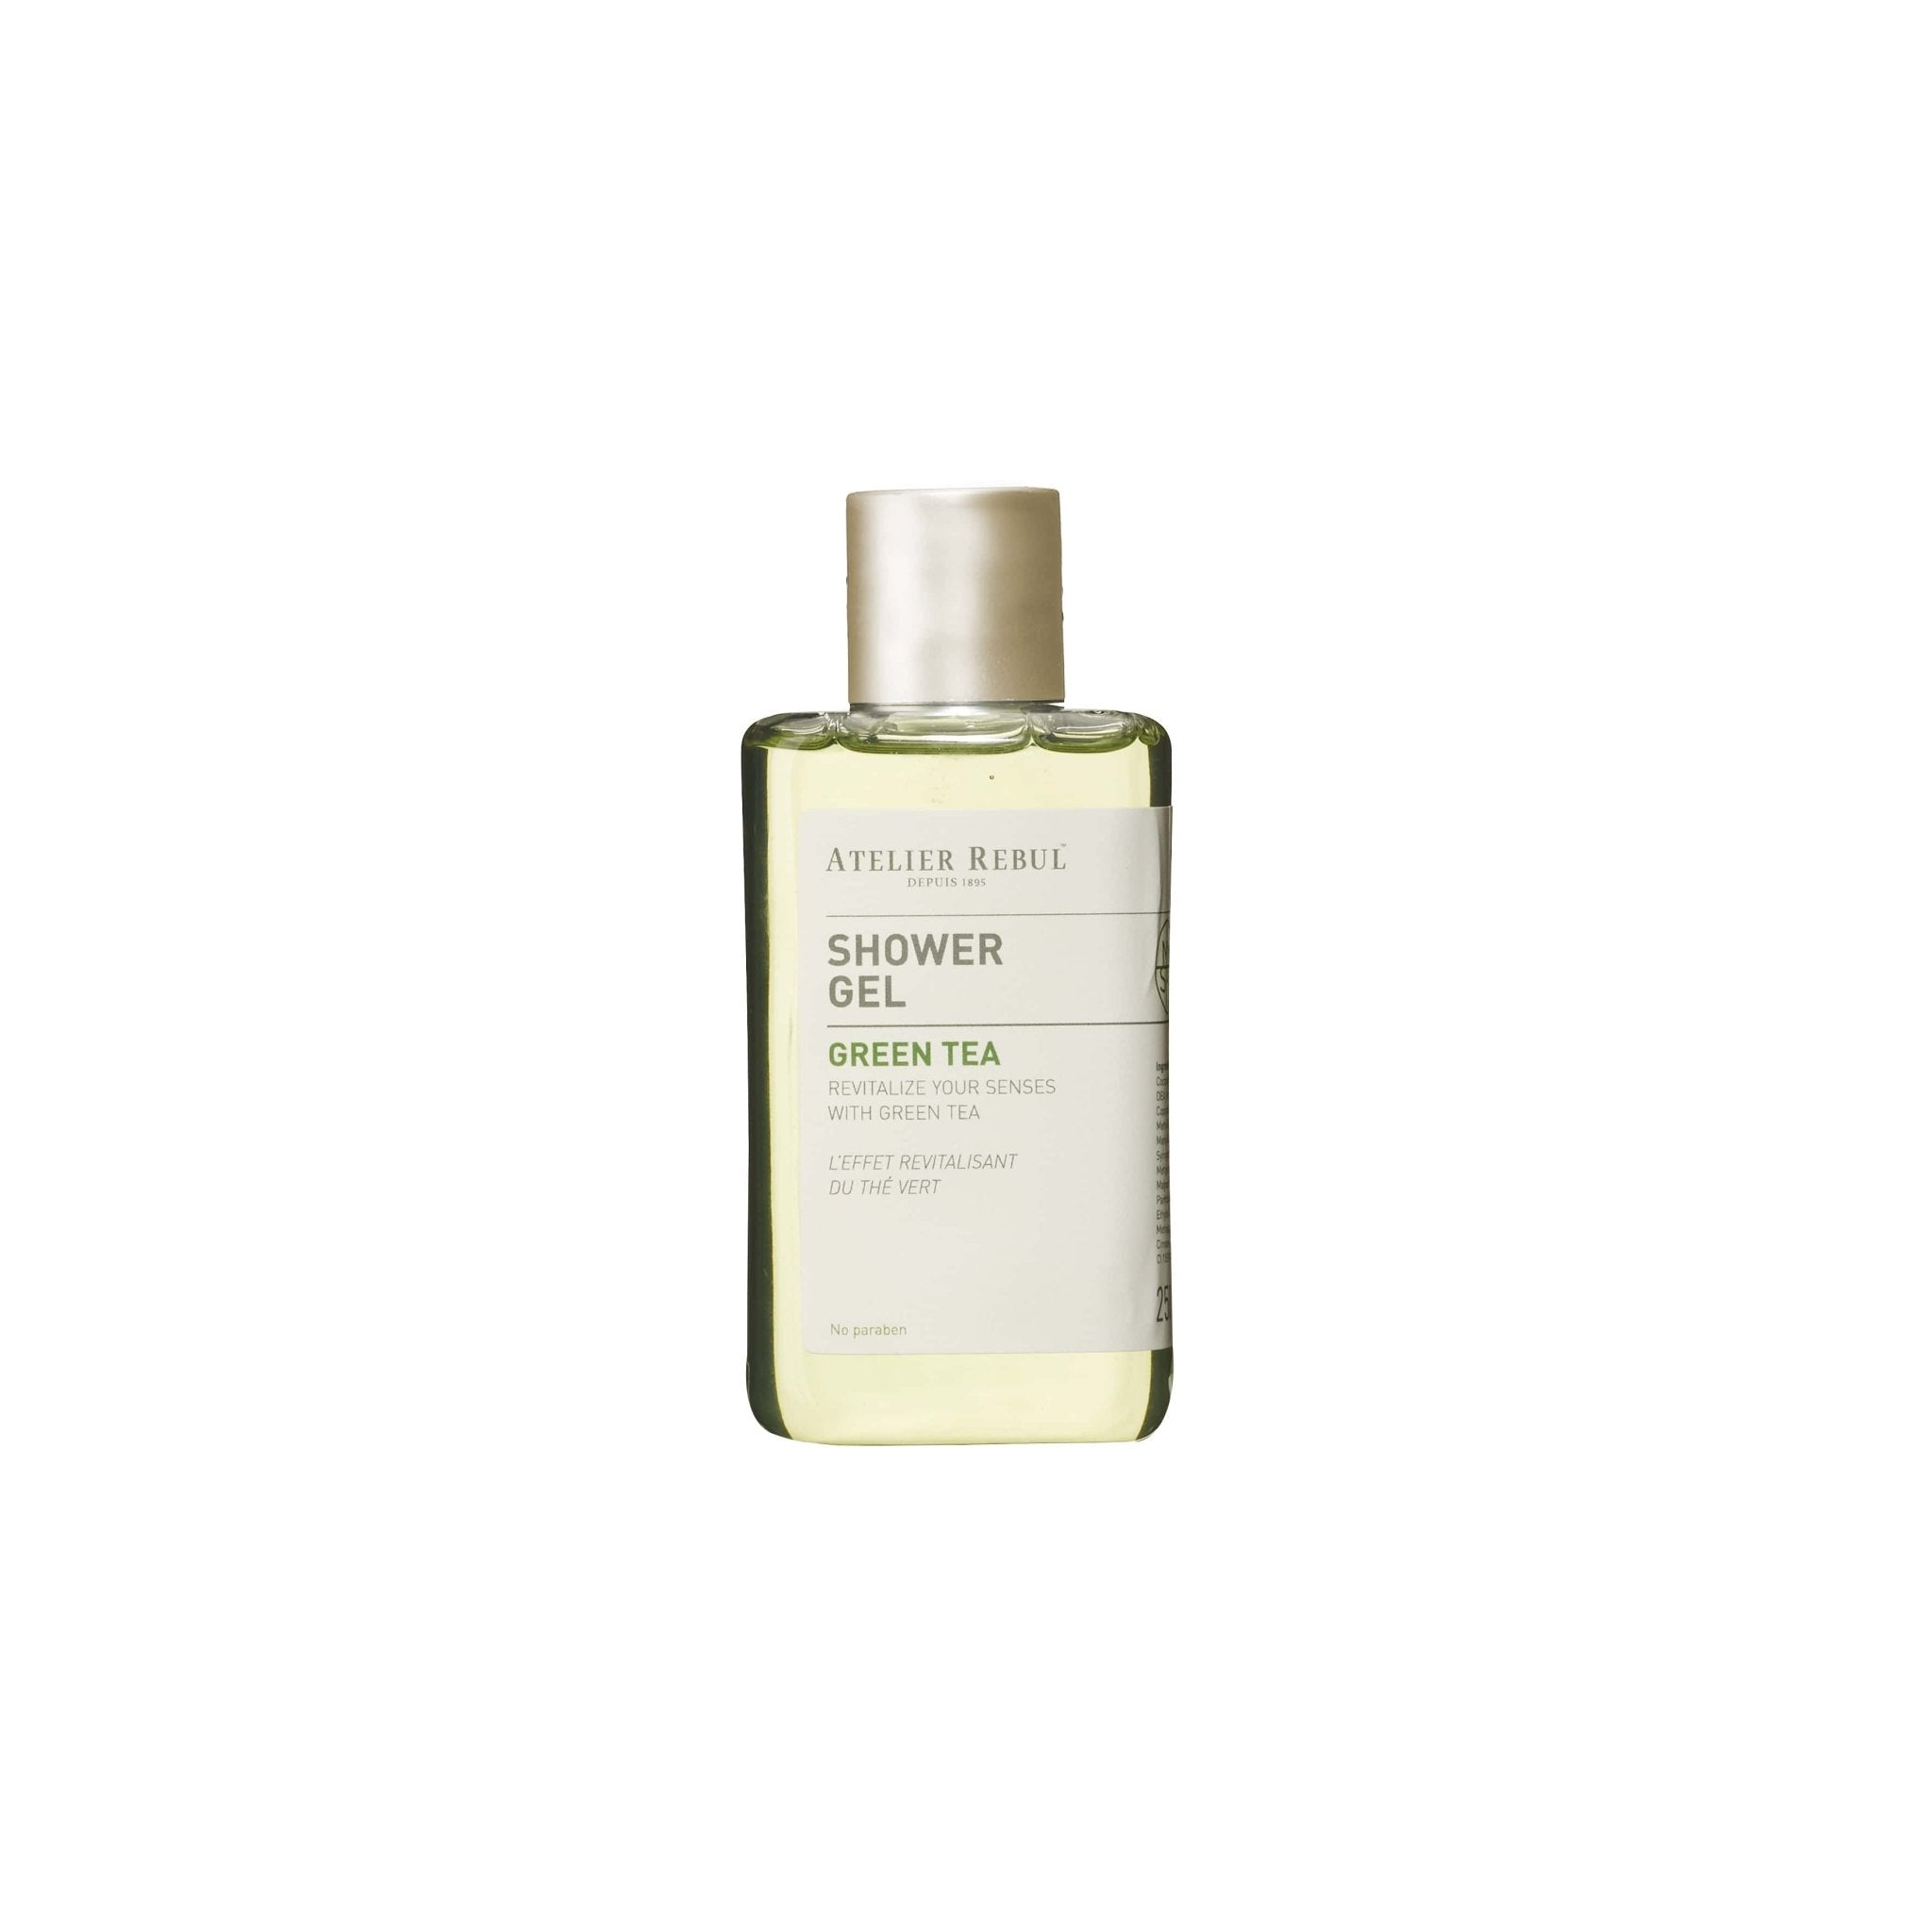 Green Tea Shower Gel 250ml - Atelier Rebul